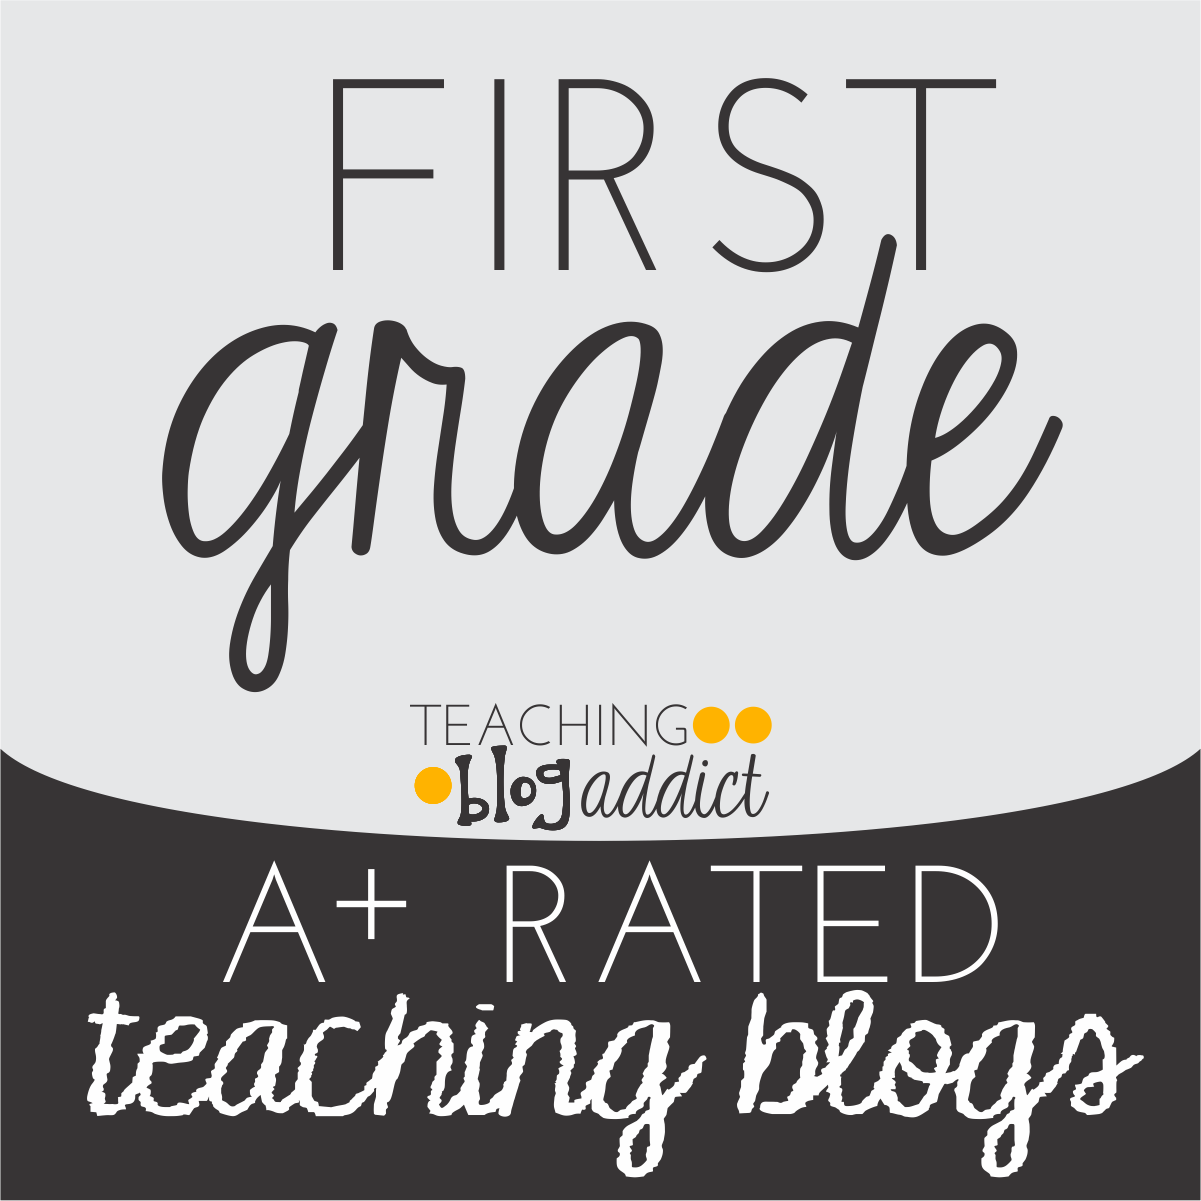 Worksheet First Grade teaching blog addict first grade blogs if you are here to find some new tips enjoy hopping with the best below